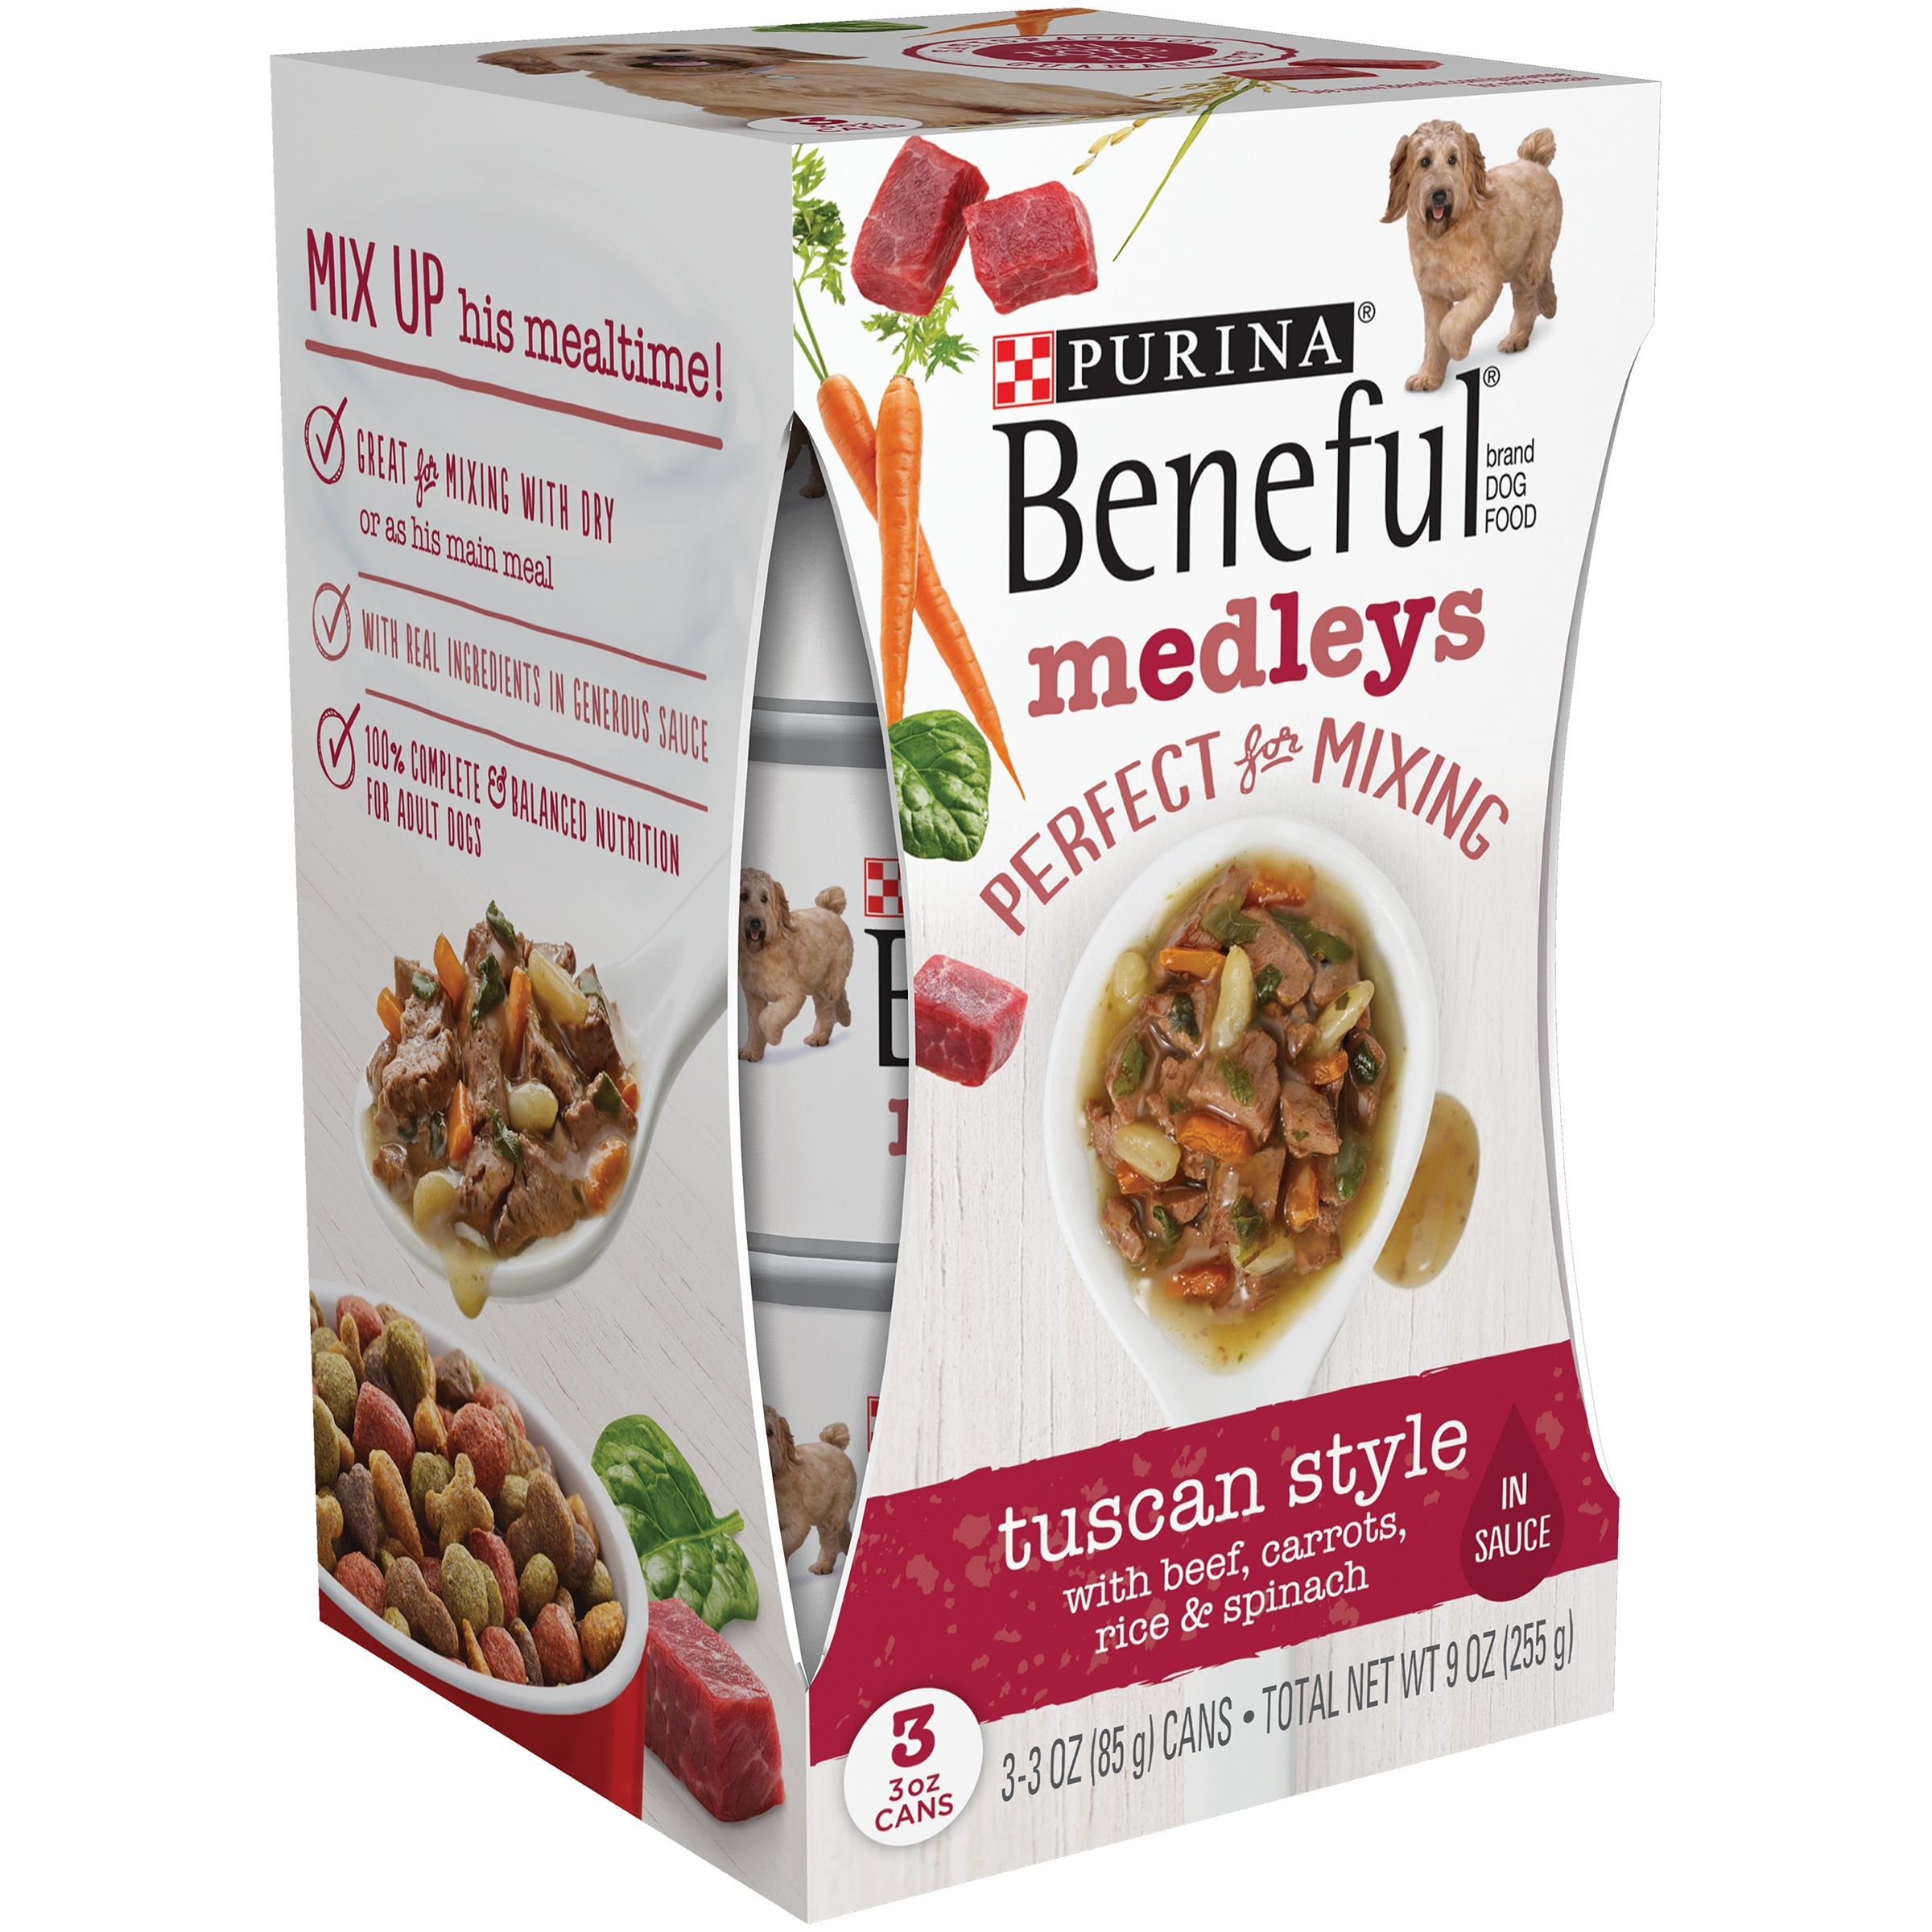 Purina Beneful Tuscan Style Medleys Dog Food 3-3 oz. Cans